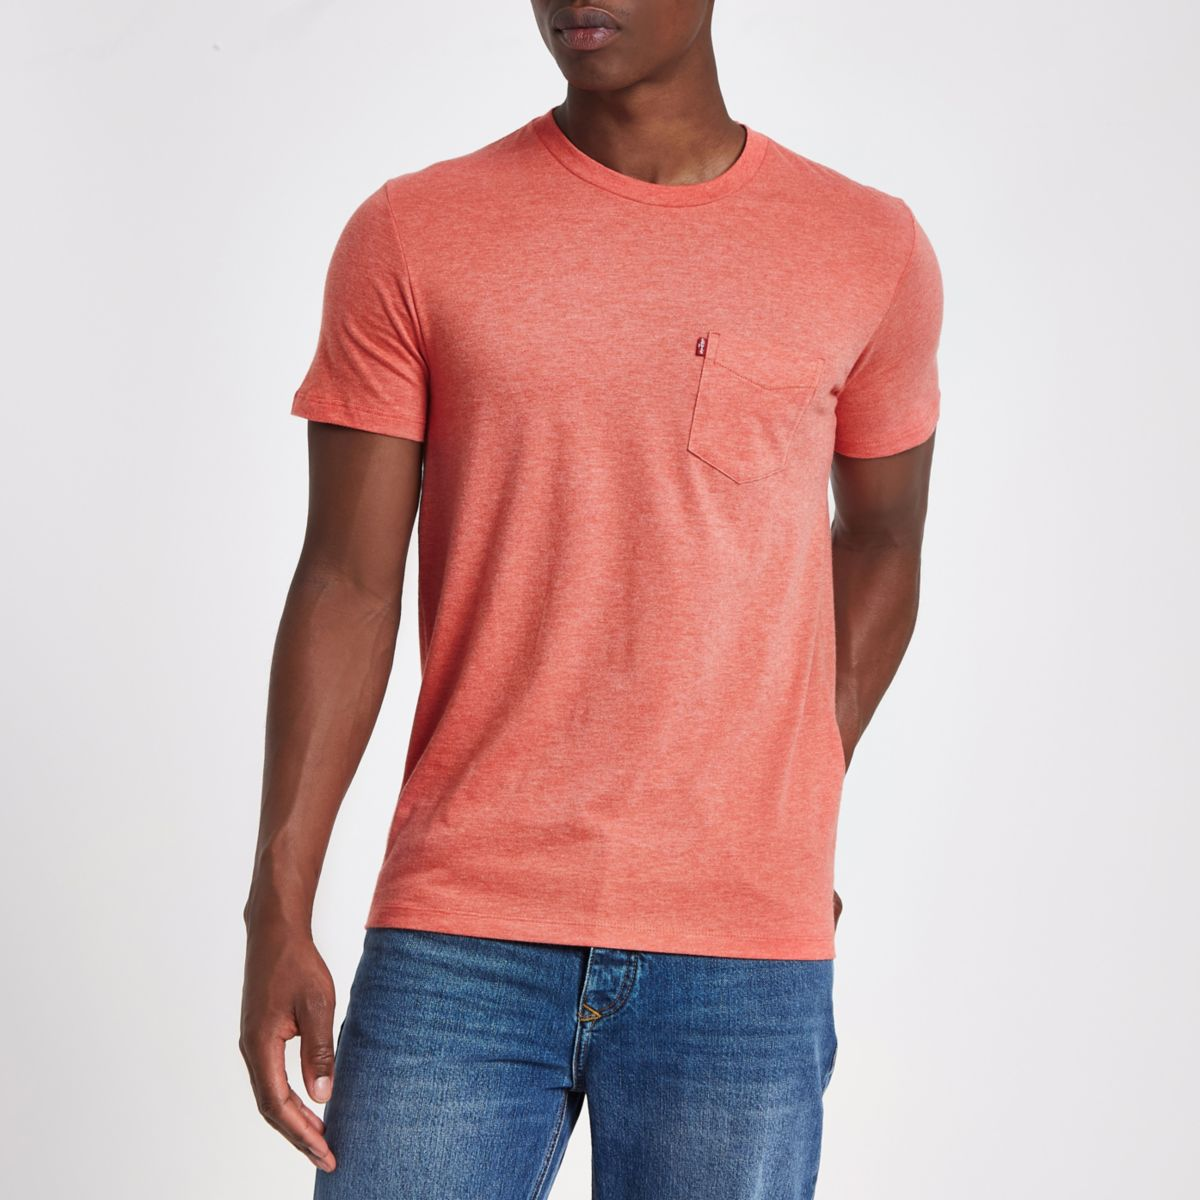 Red Levi's short sleeve pocket T-shirt